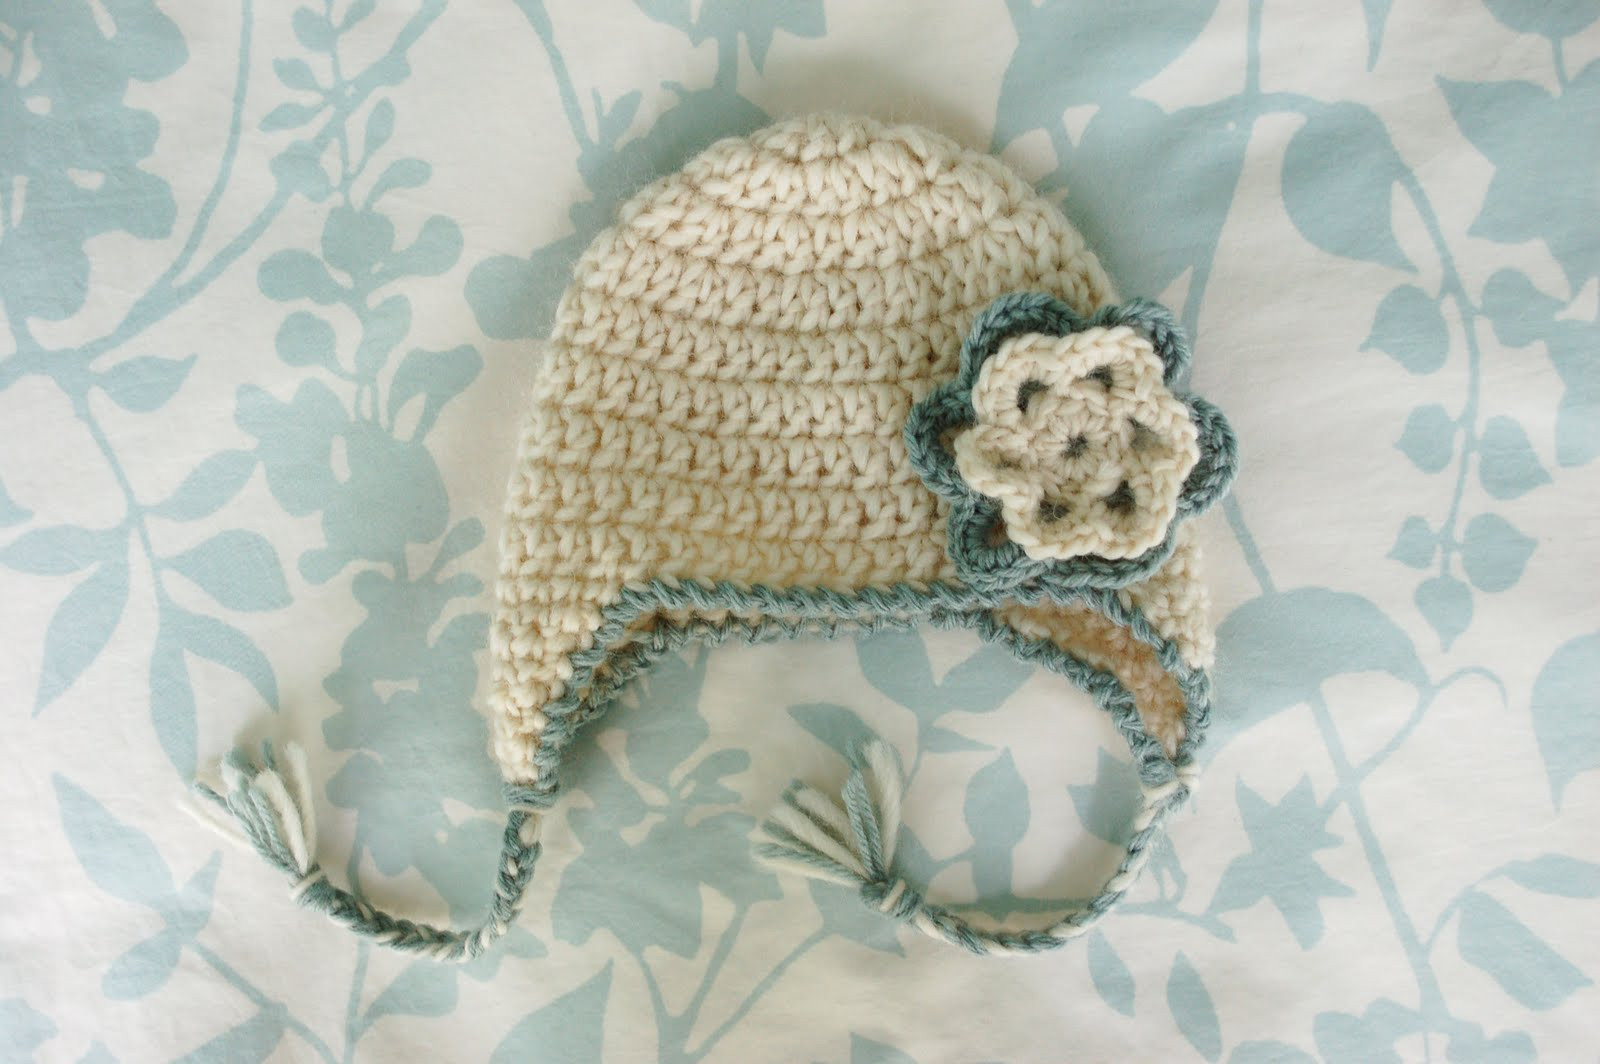 Elegant Alli Crafts Free Pattern Baby Earflap Hat Newborn Free Crochet Patterns for Newborns Of Unique 40 Photos Free Crochet Patterns for Newborns